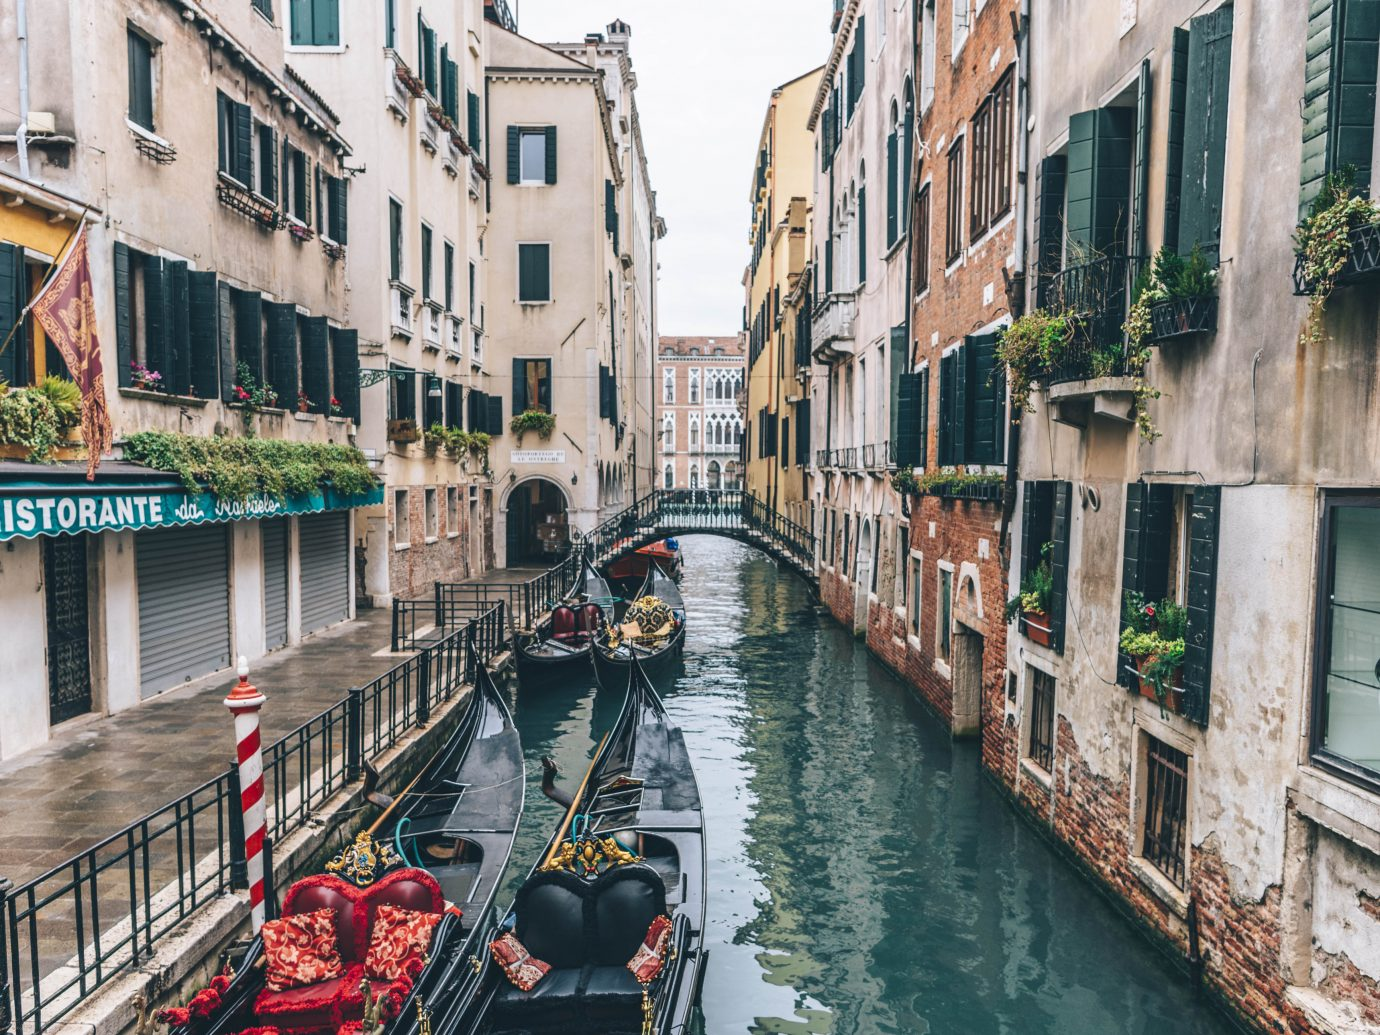 View of boats in a canal in Venice Italy